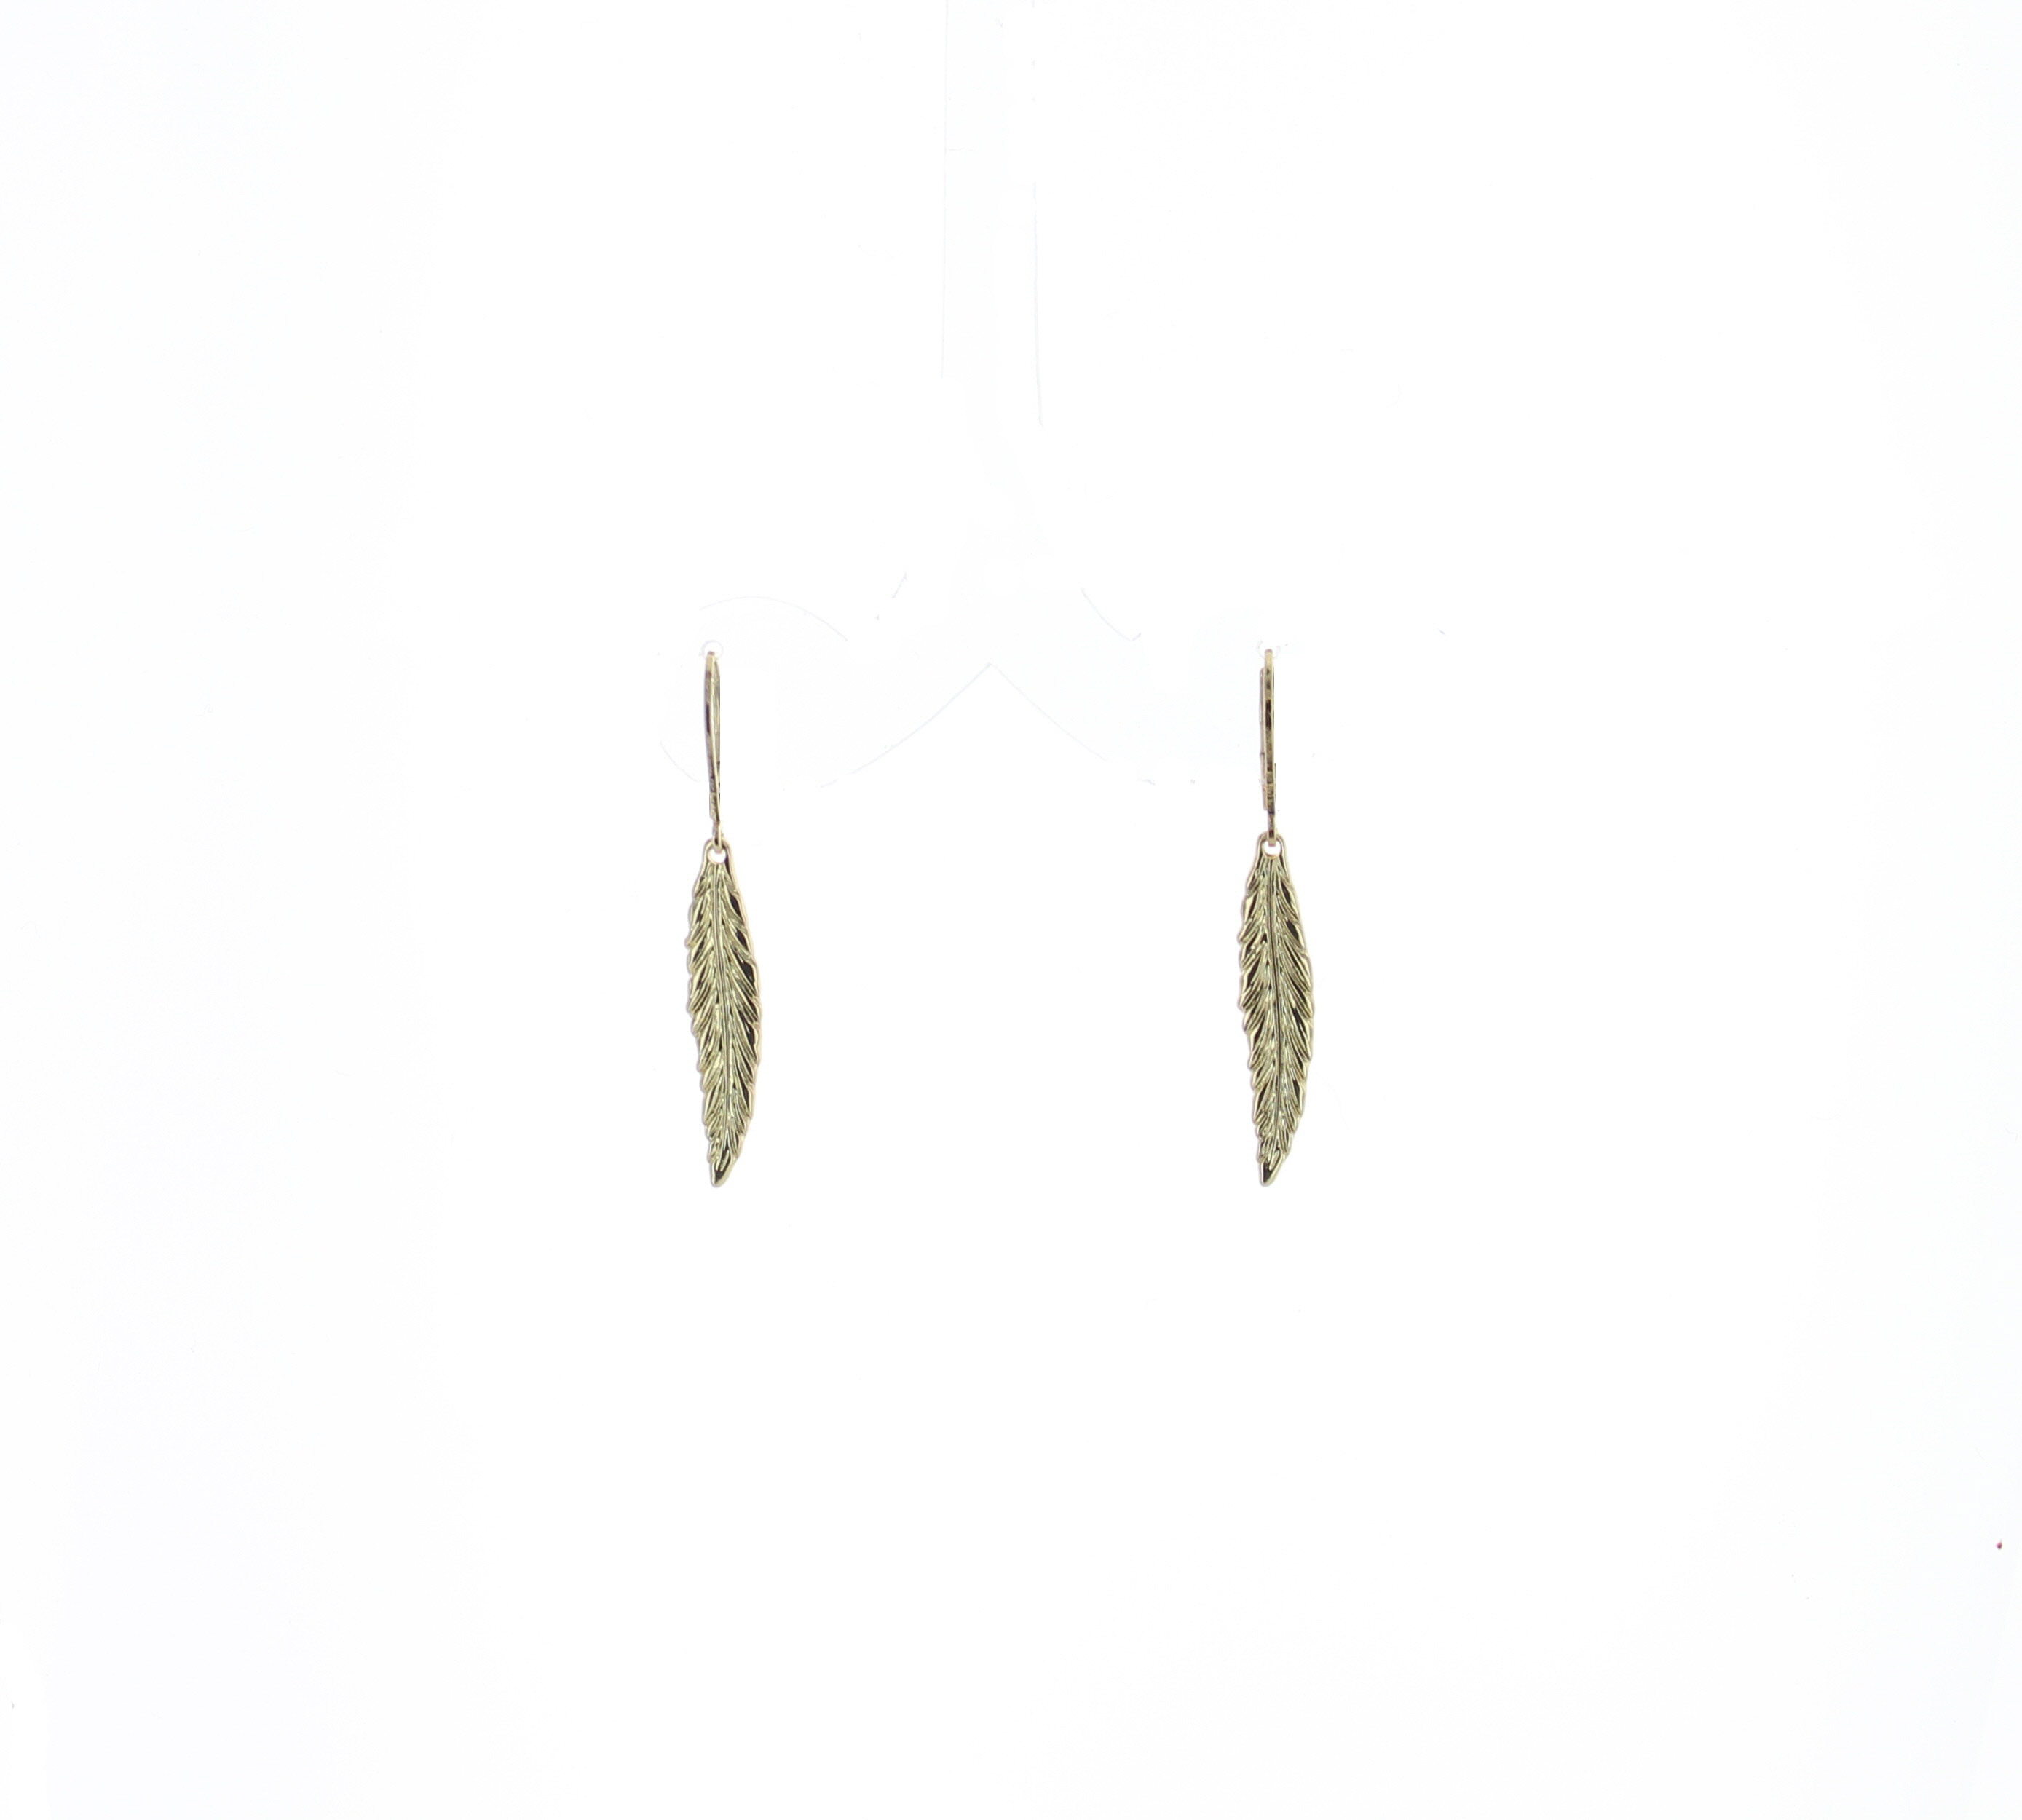 tee gray leather the feathered for bling dsc soul feather products earrings